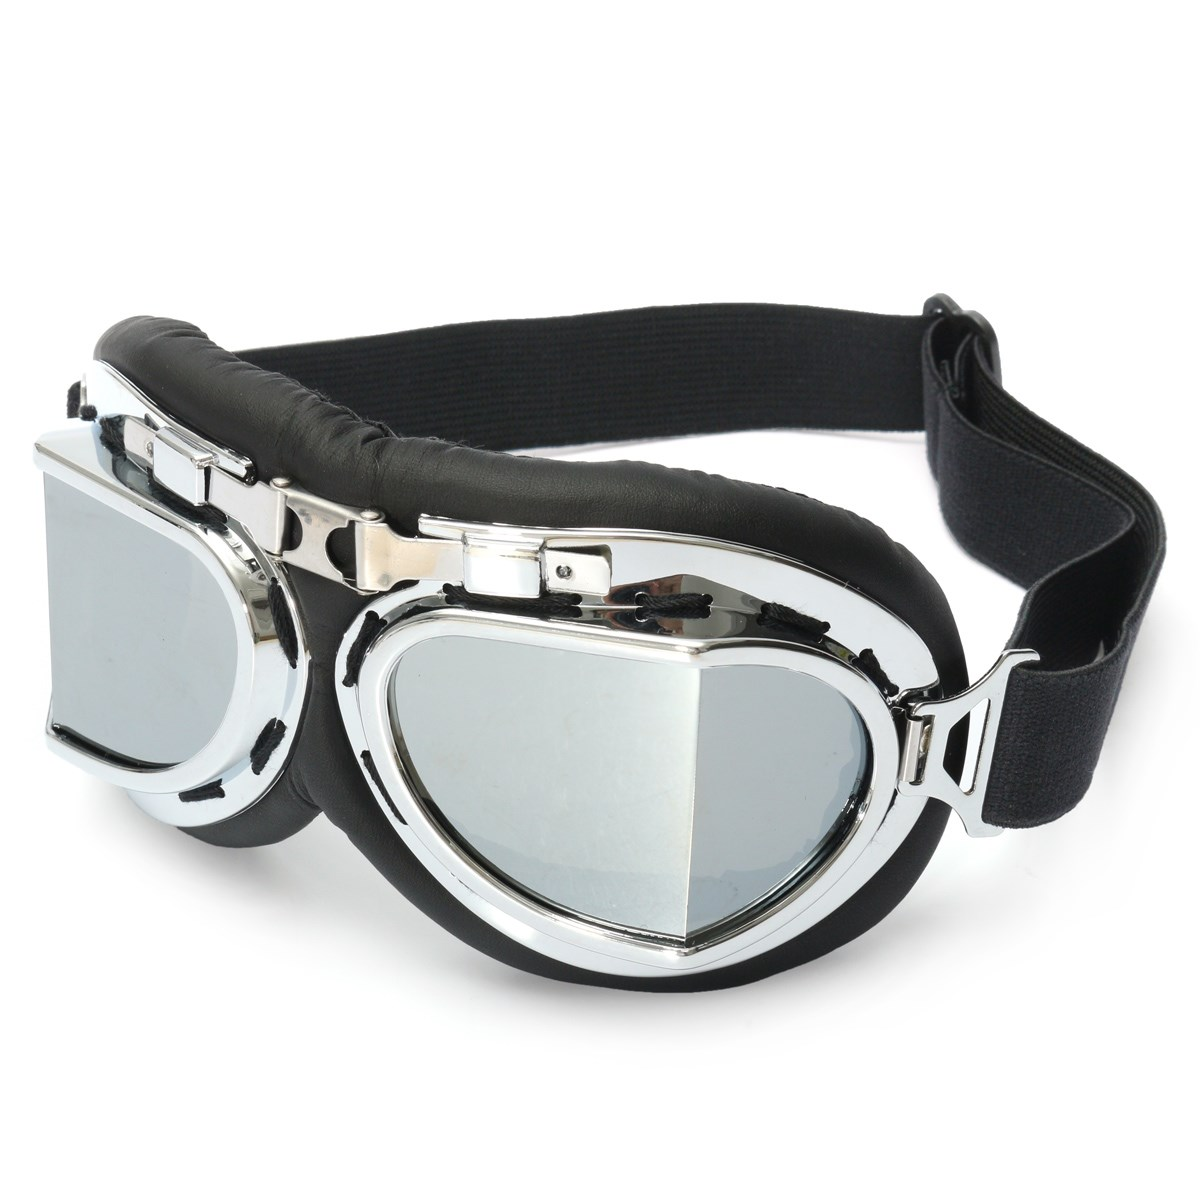 Pilot Motorcycle Sport Ski Clear Goggle Eyewear Scooter Goggle Glasses Safety Protective Goggle